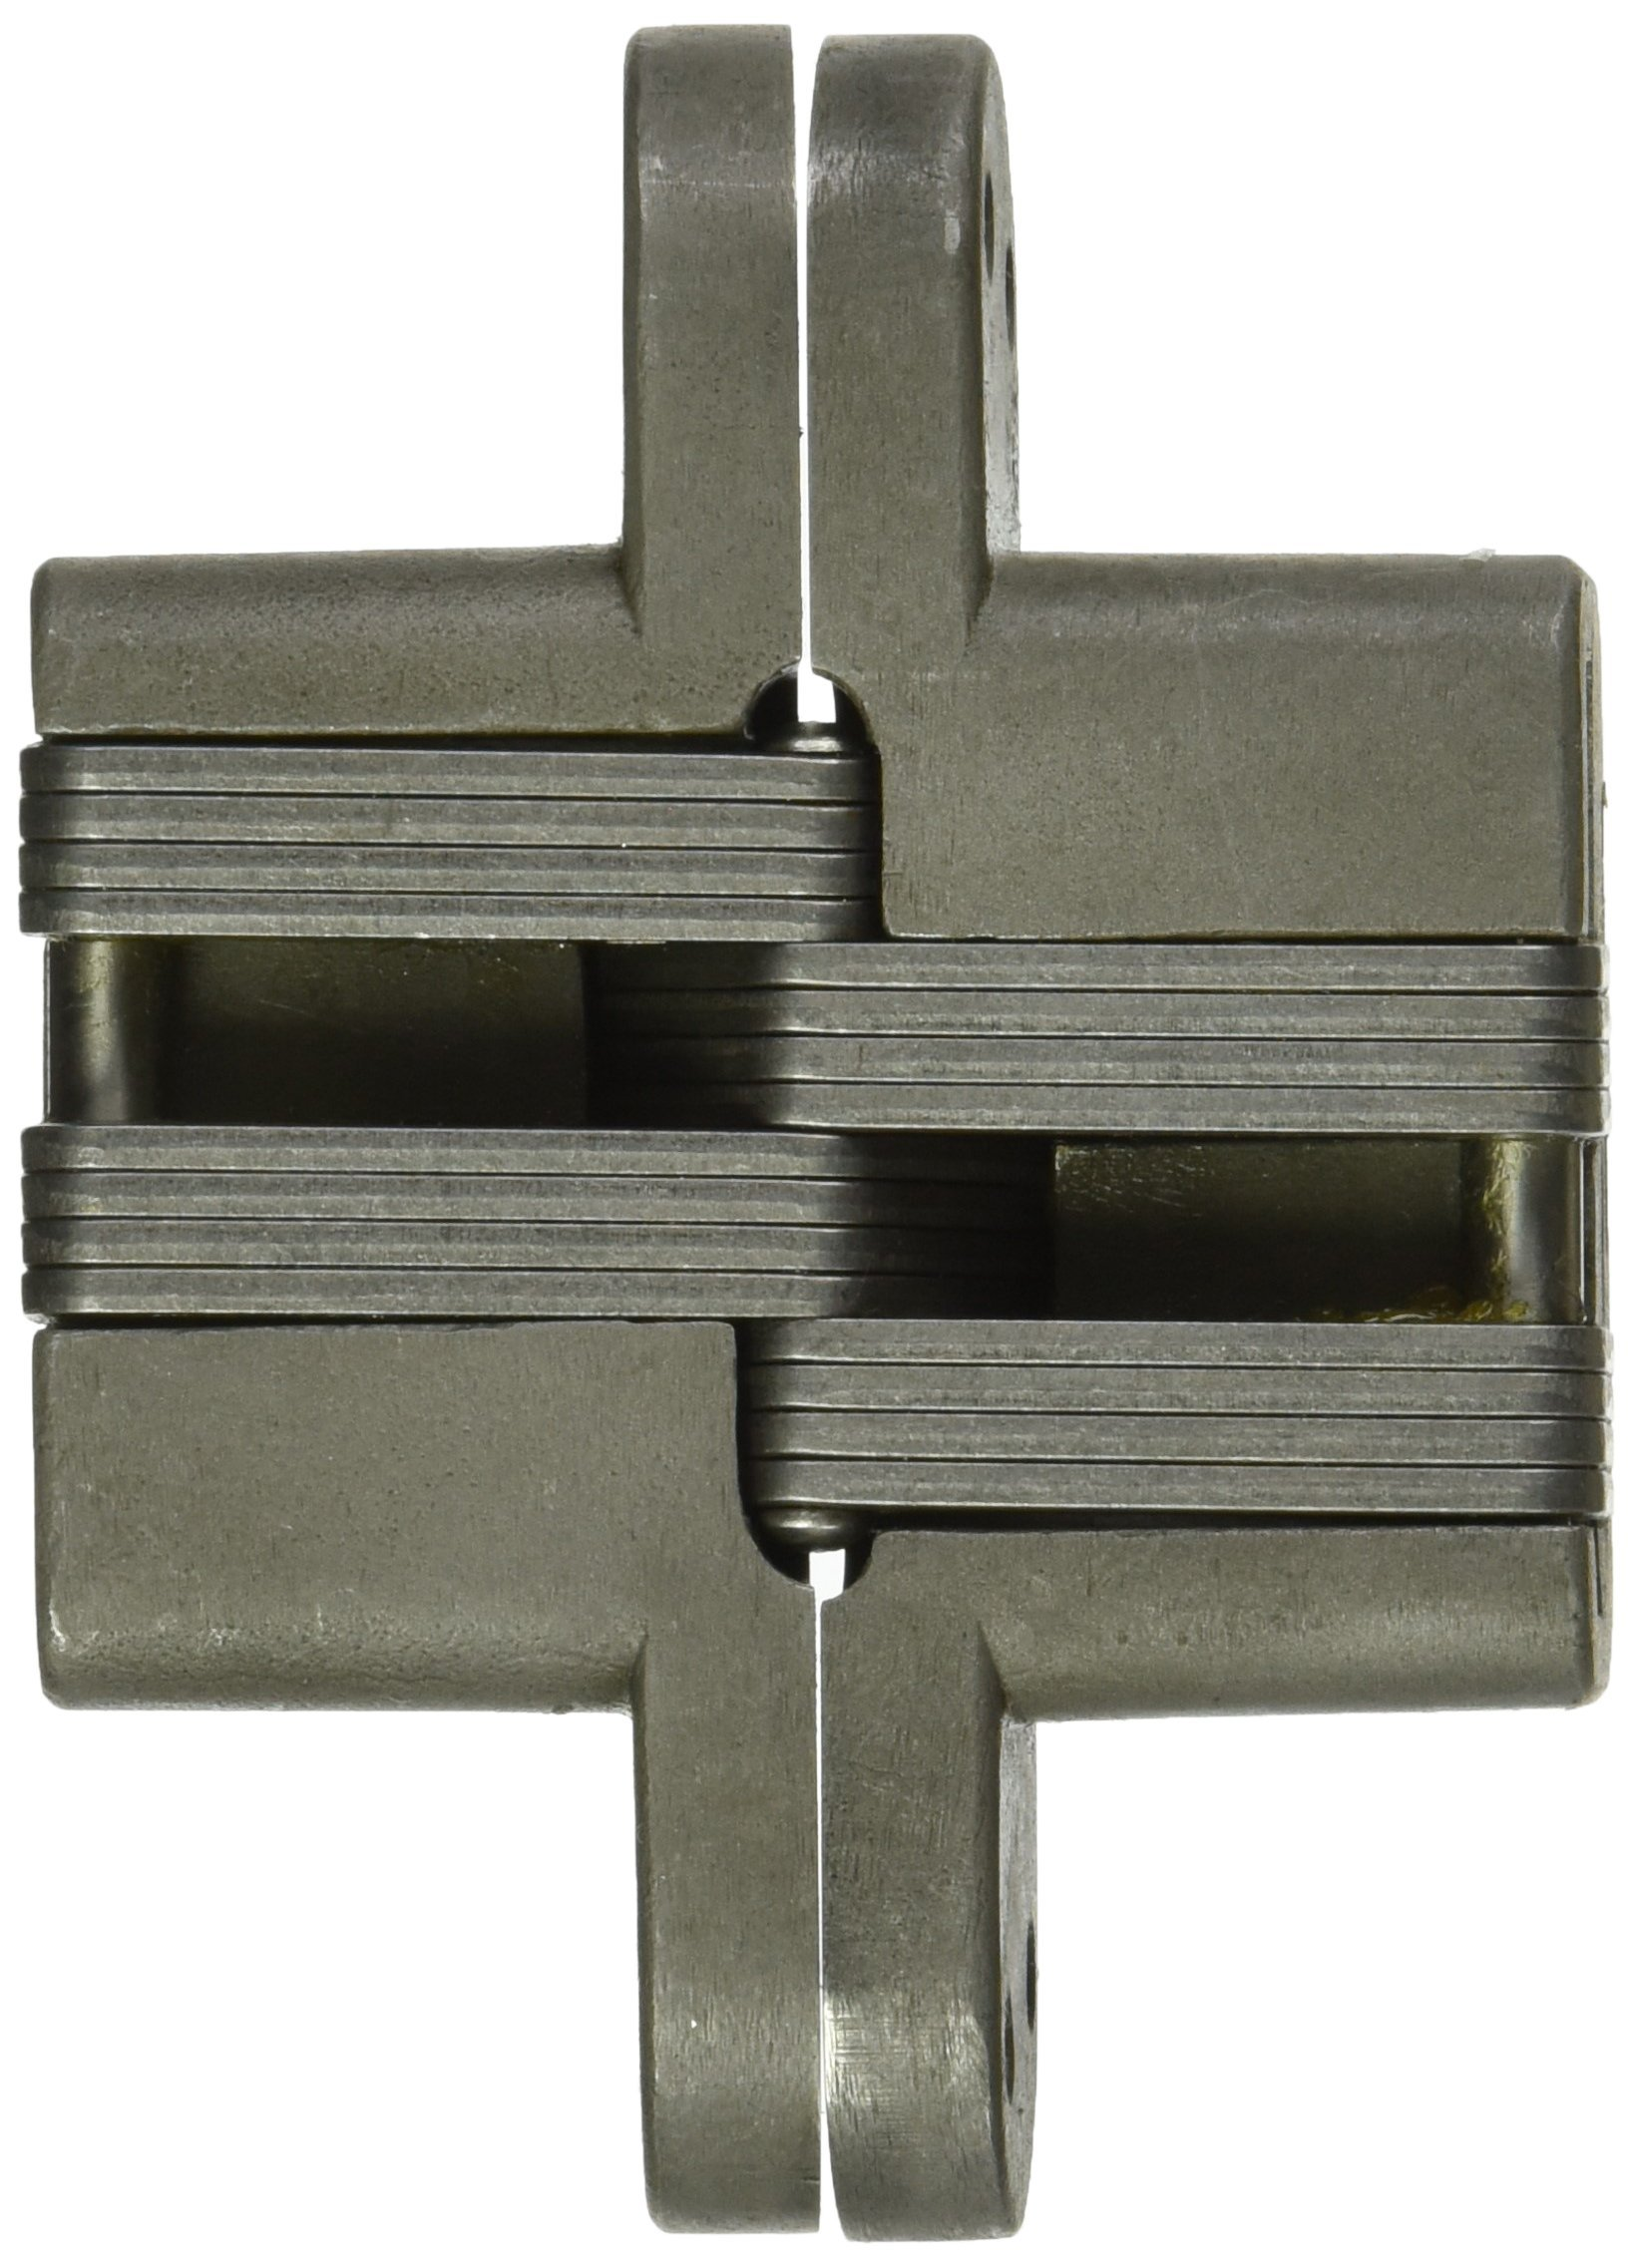 SOSS 418SS Stainless Steel 20/90/180 Min. Fire Rated Hinge for 1.75'' Doors, Bright Stainless Steel Exterior Finish